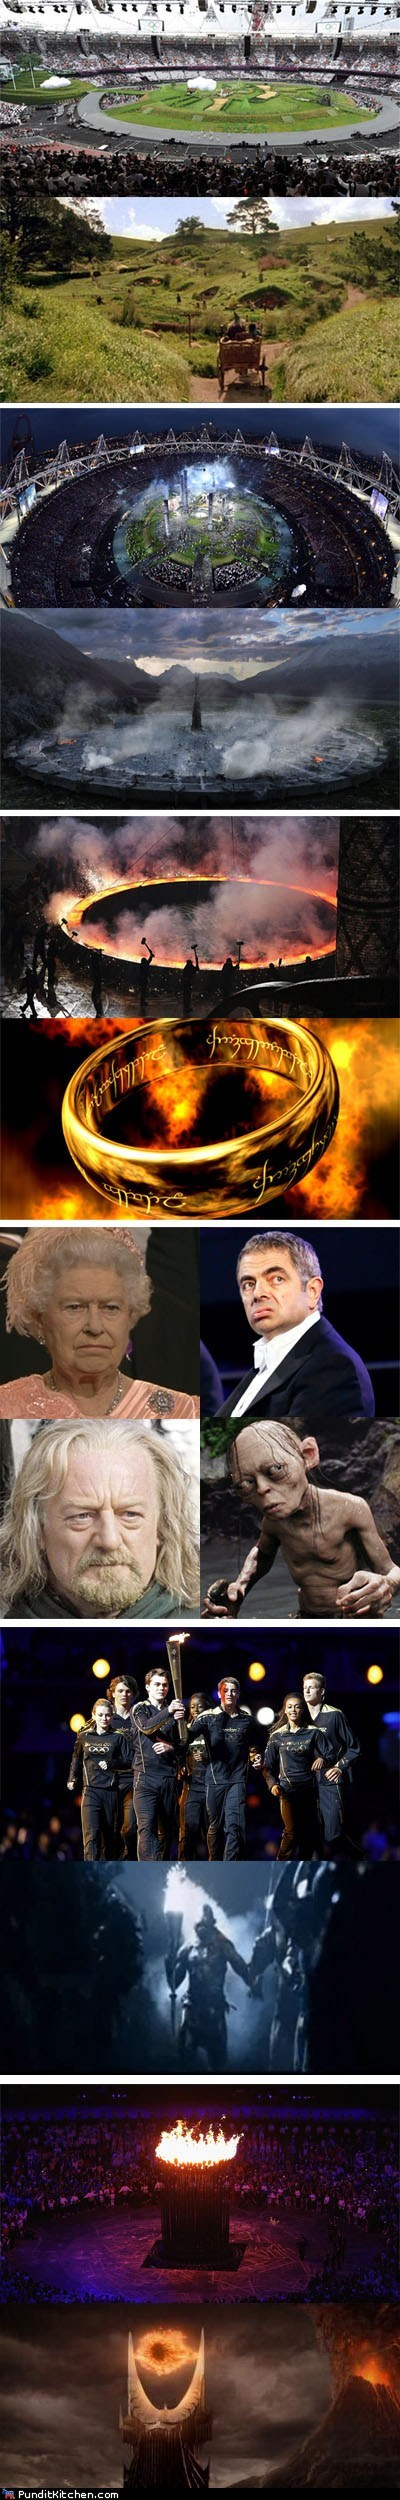 geek,London,Lord of the Rings,olympics,political pictures